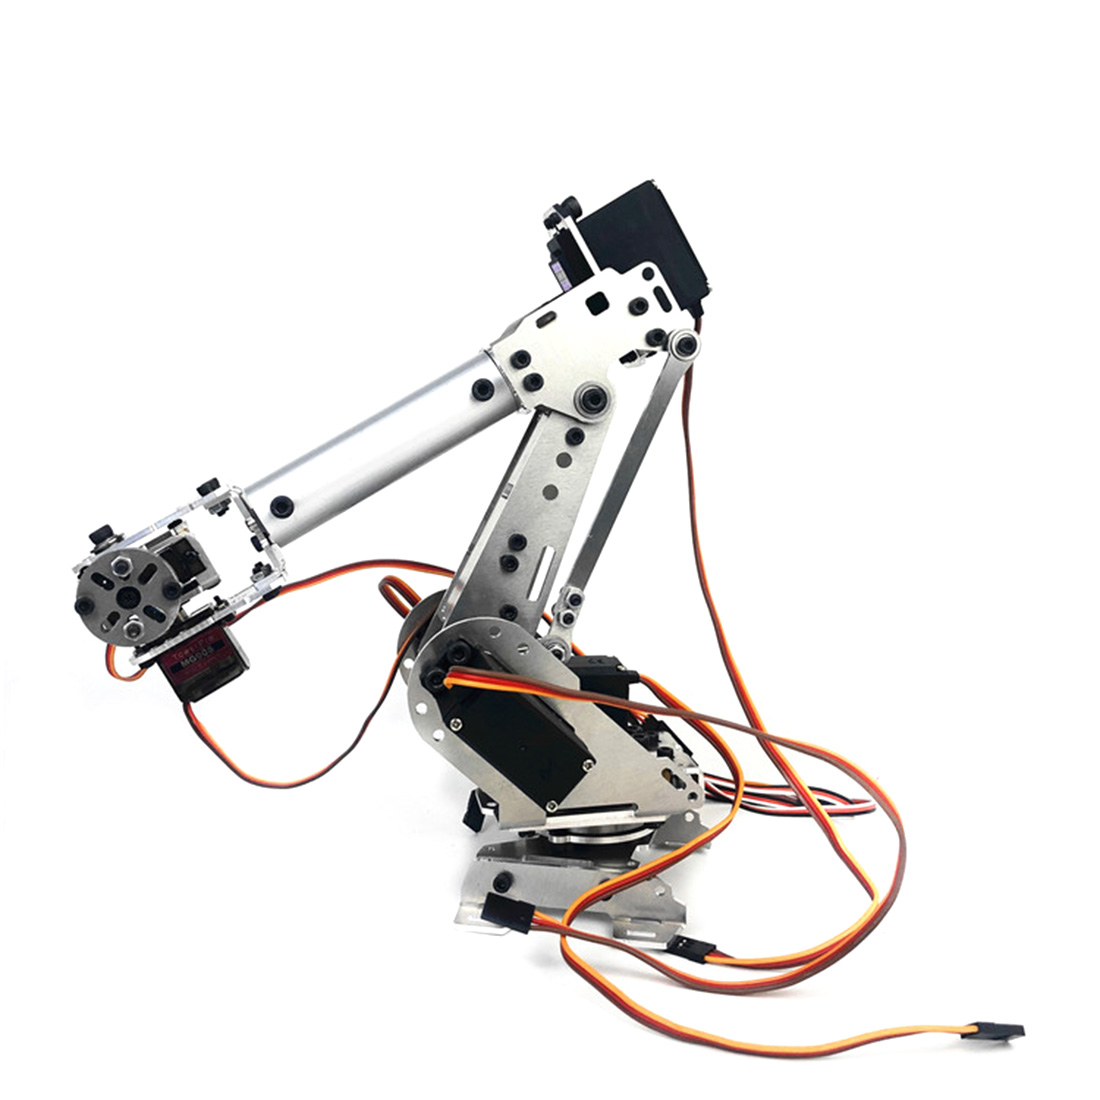 DIY 6DOF Mechanical Arm Robot Kit ABB Industrial Robot Model Toys For Kids Children Birthdaty Gifts 2020